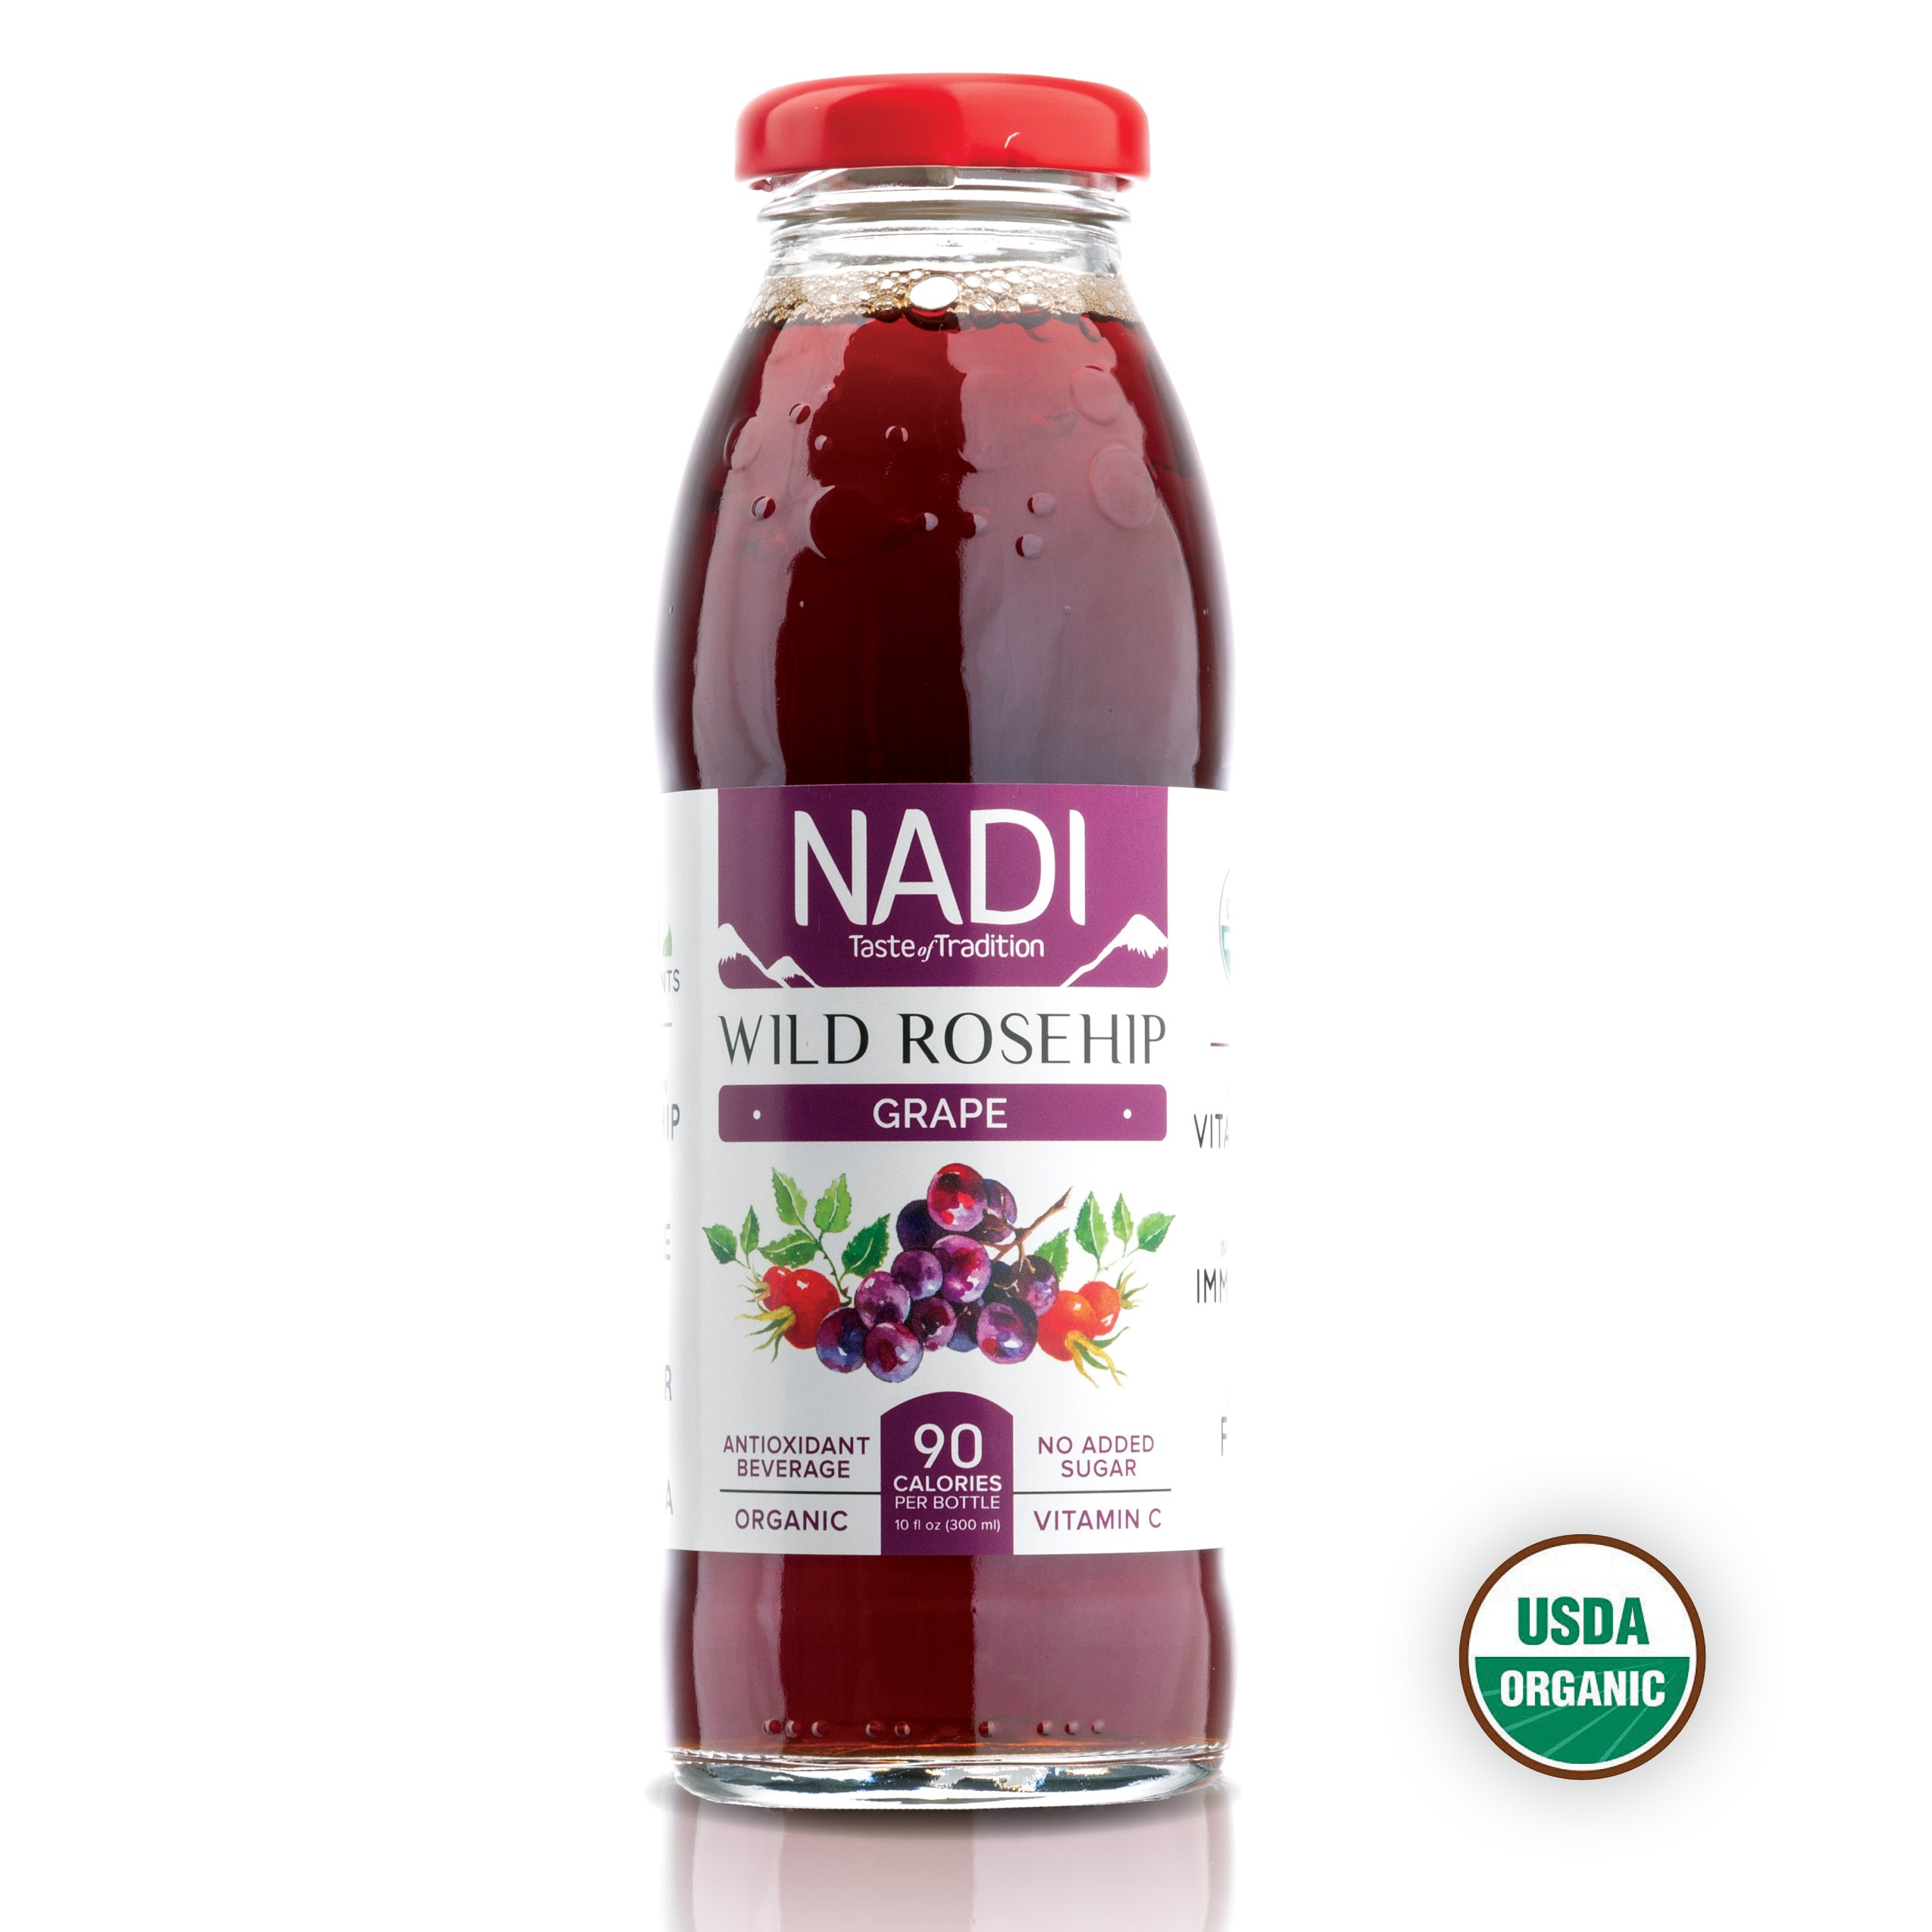 Organic Wild Rosehip Grape Antioxidant Beverage